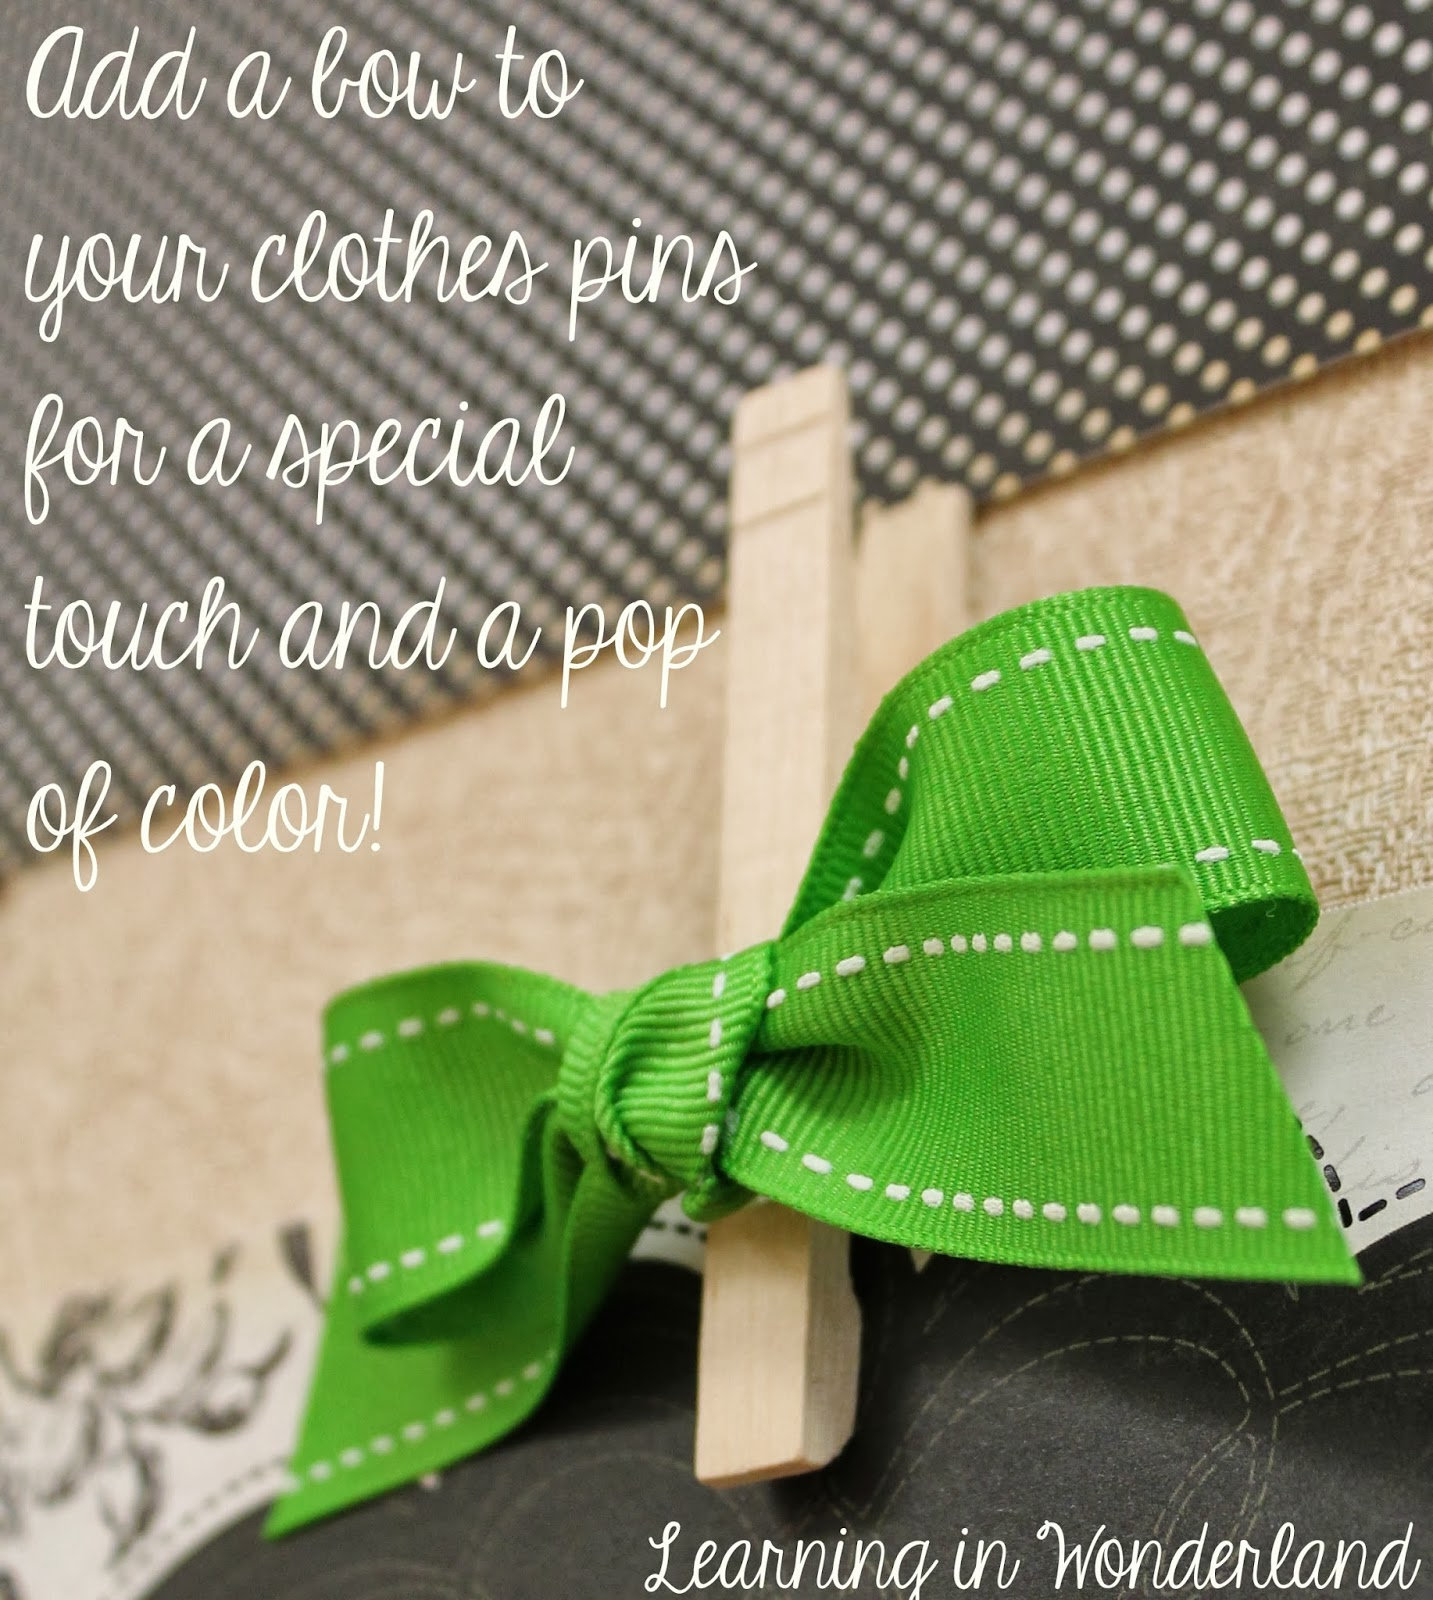 Scrapbook ideas using ribbon - Using Clothespins To Display Student Work